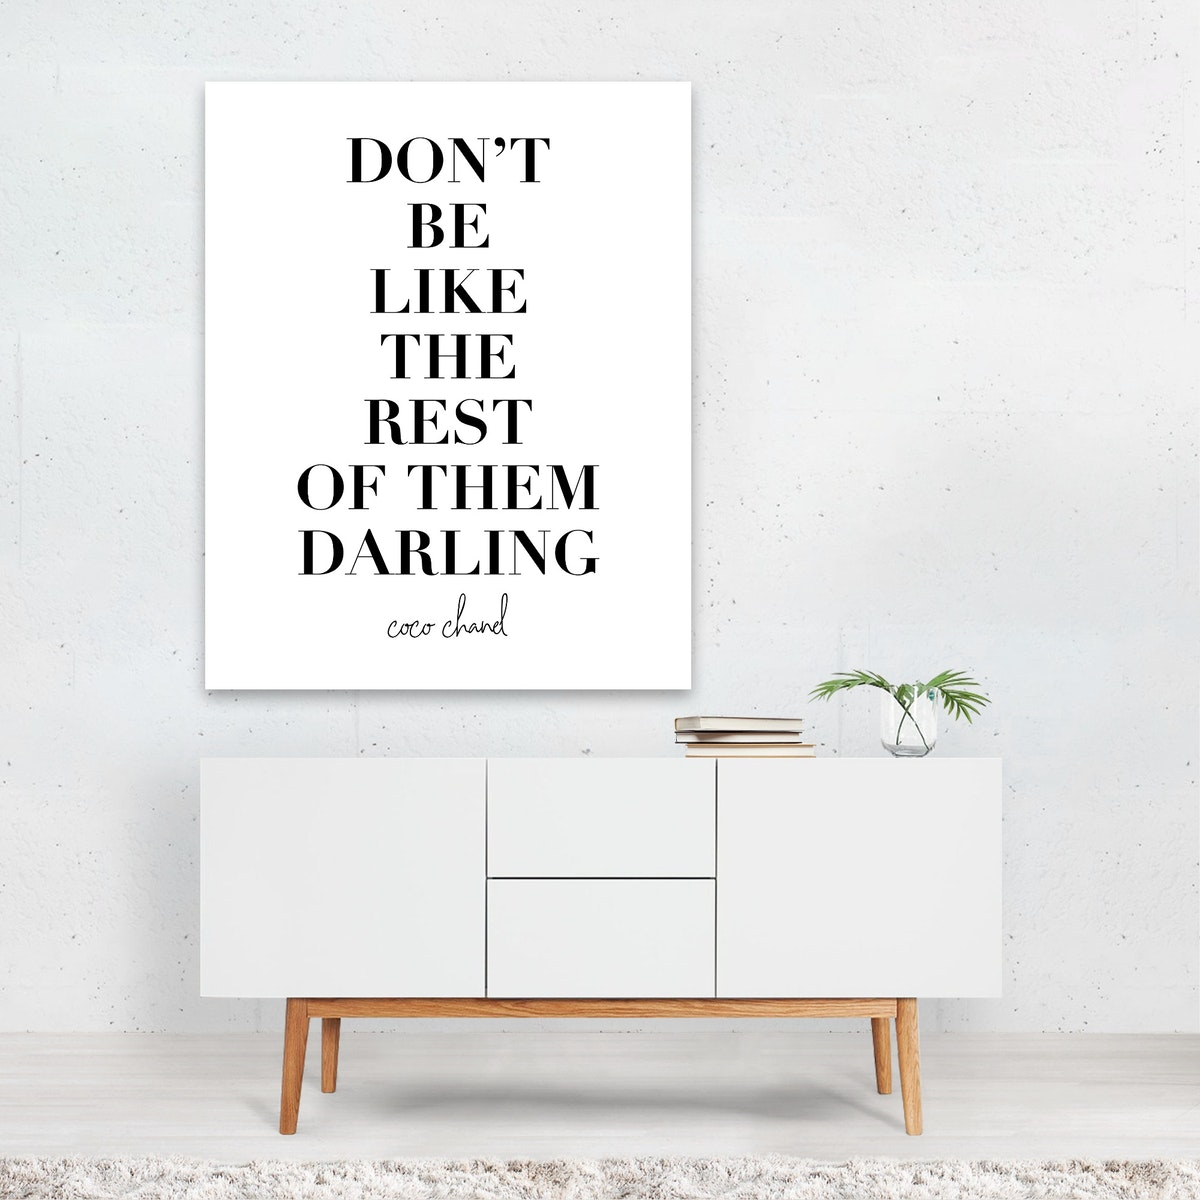 Don't Be Like the Rest of Them Darling. -Coco Chanel Quote